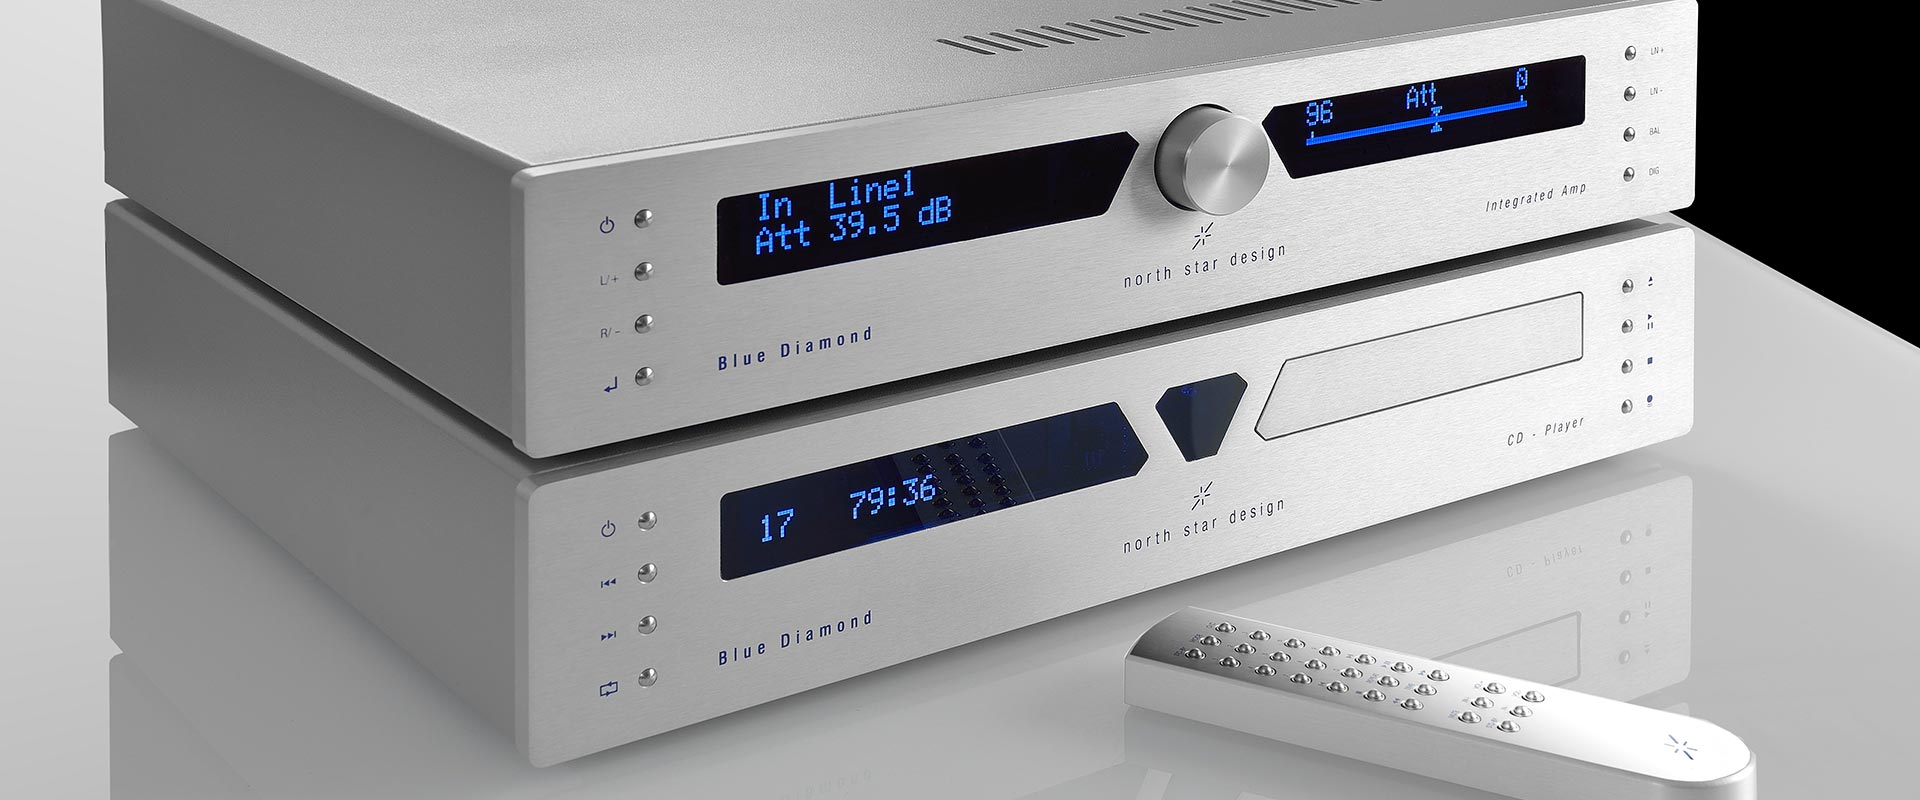 North Star Design Blue Diamond Integrated Amp CD player